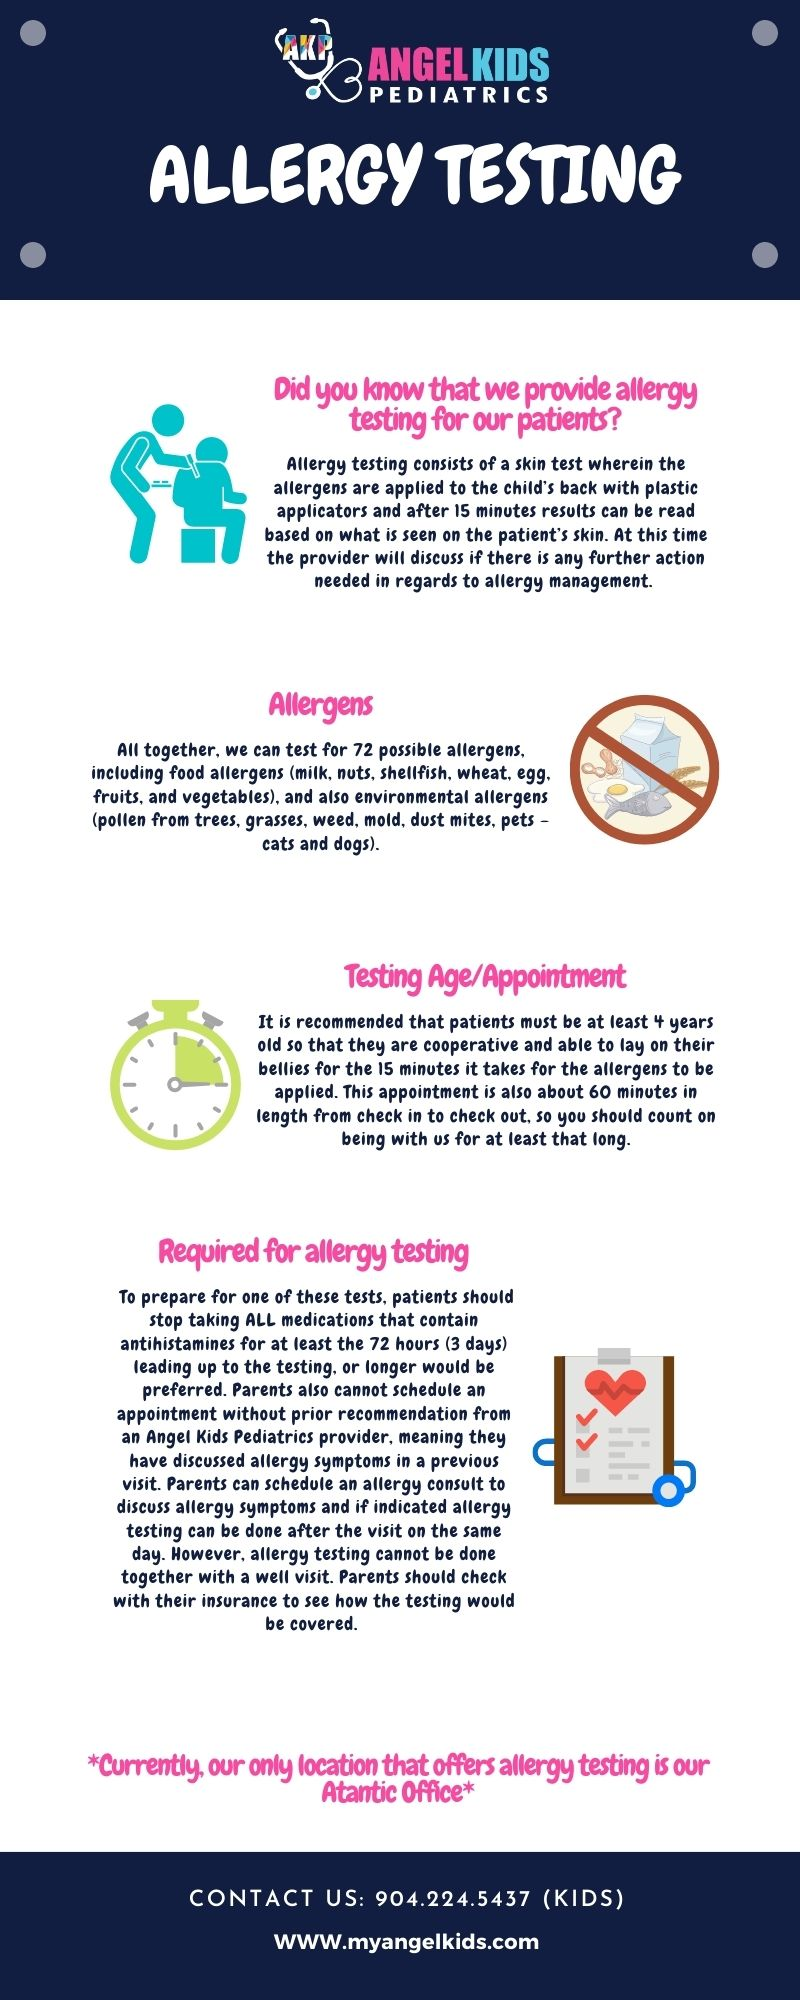 Allergy Testing Infographic